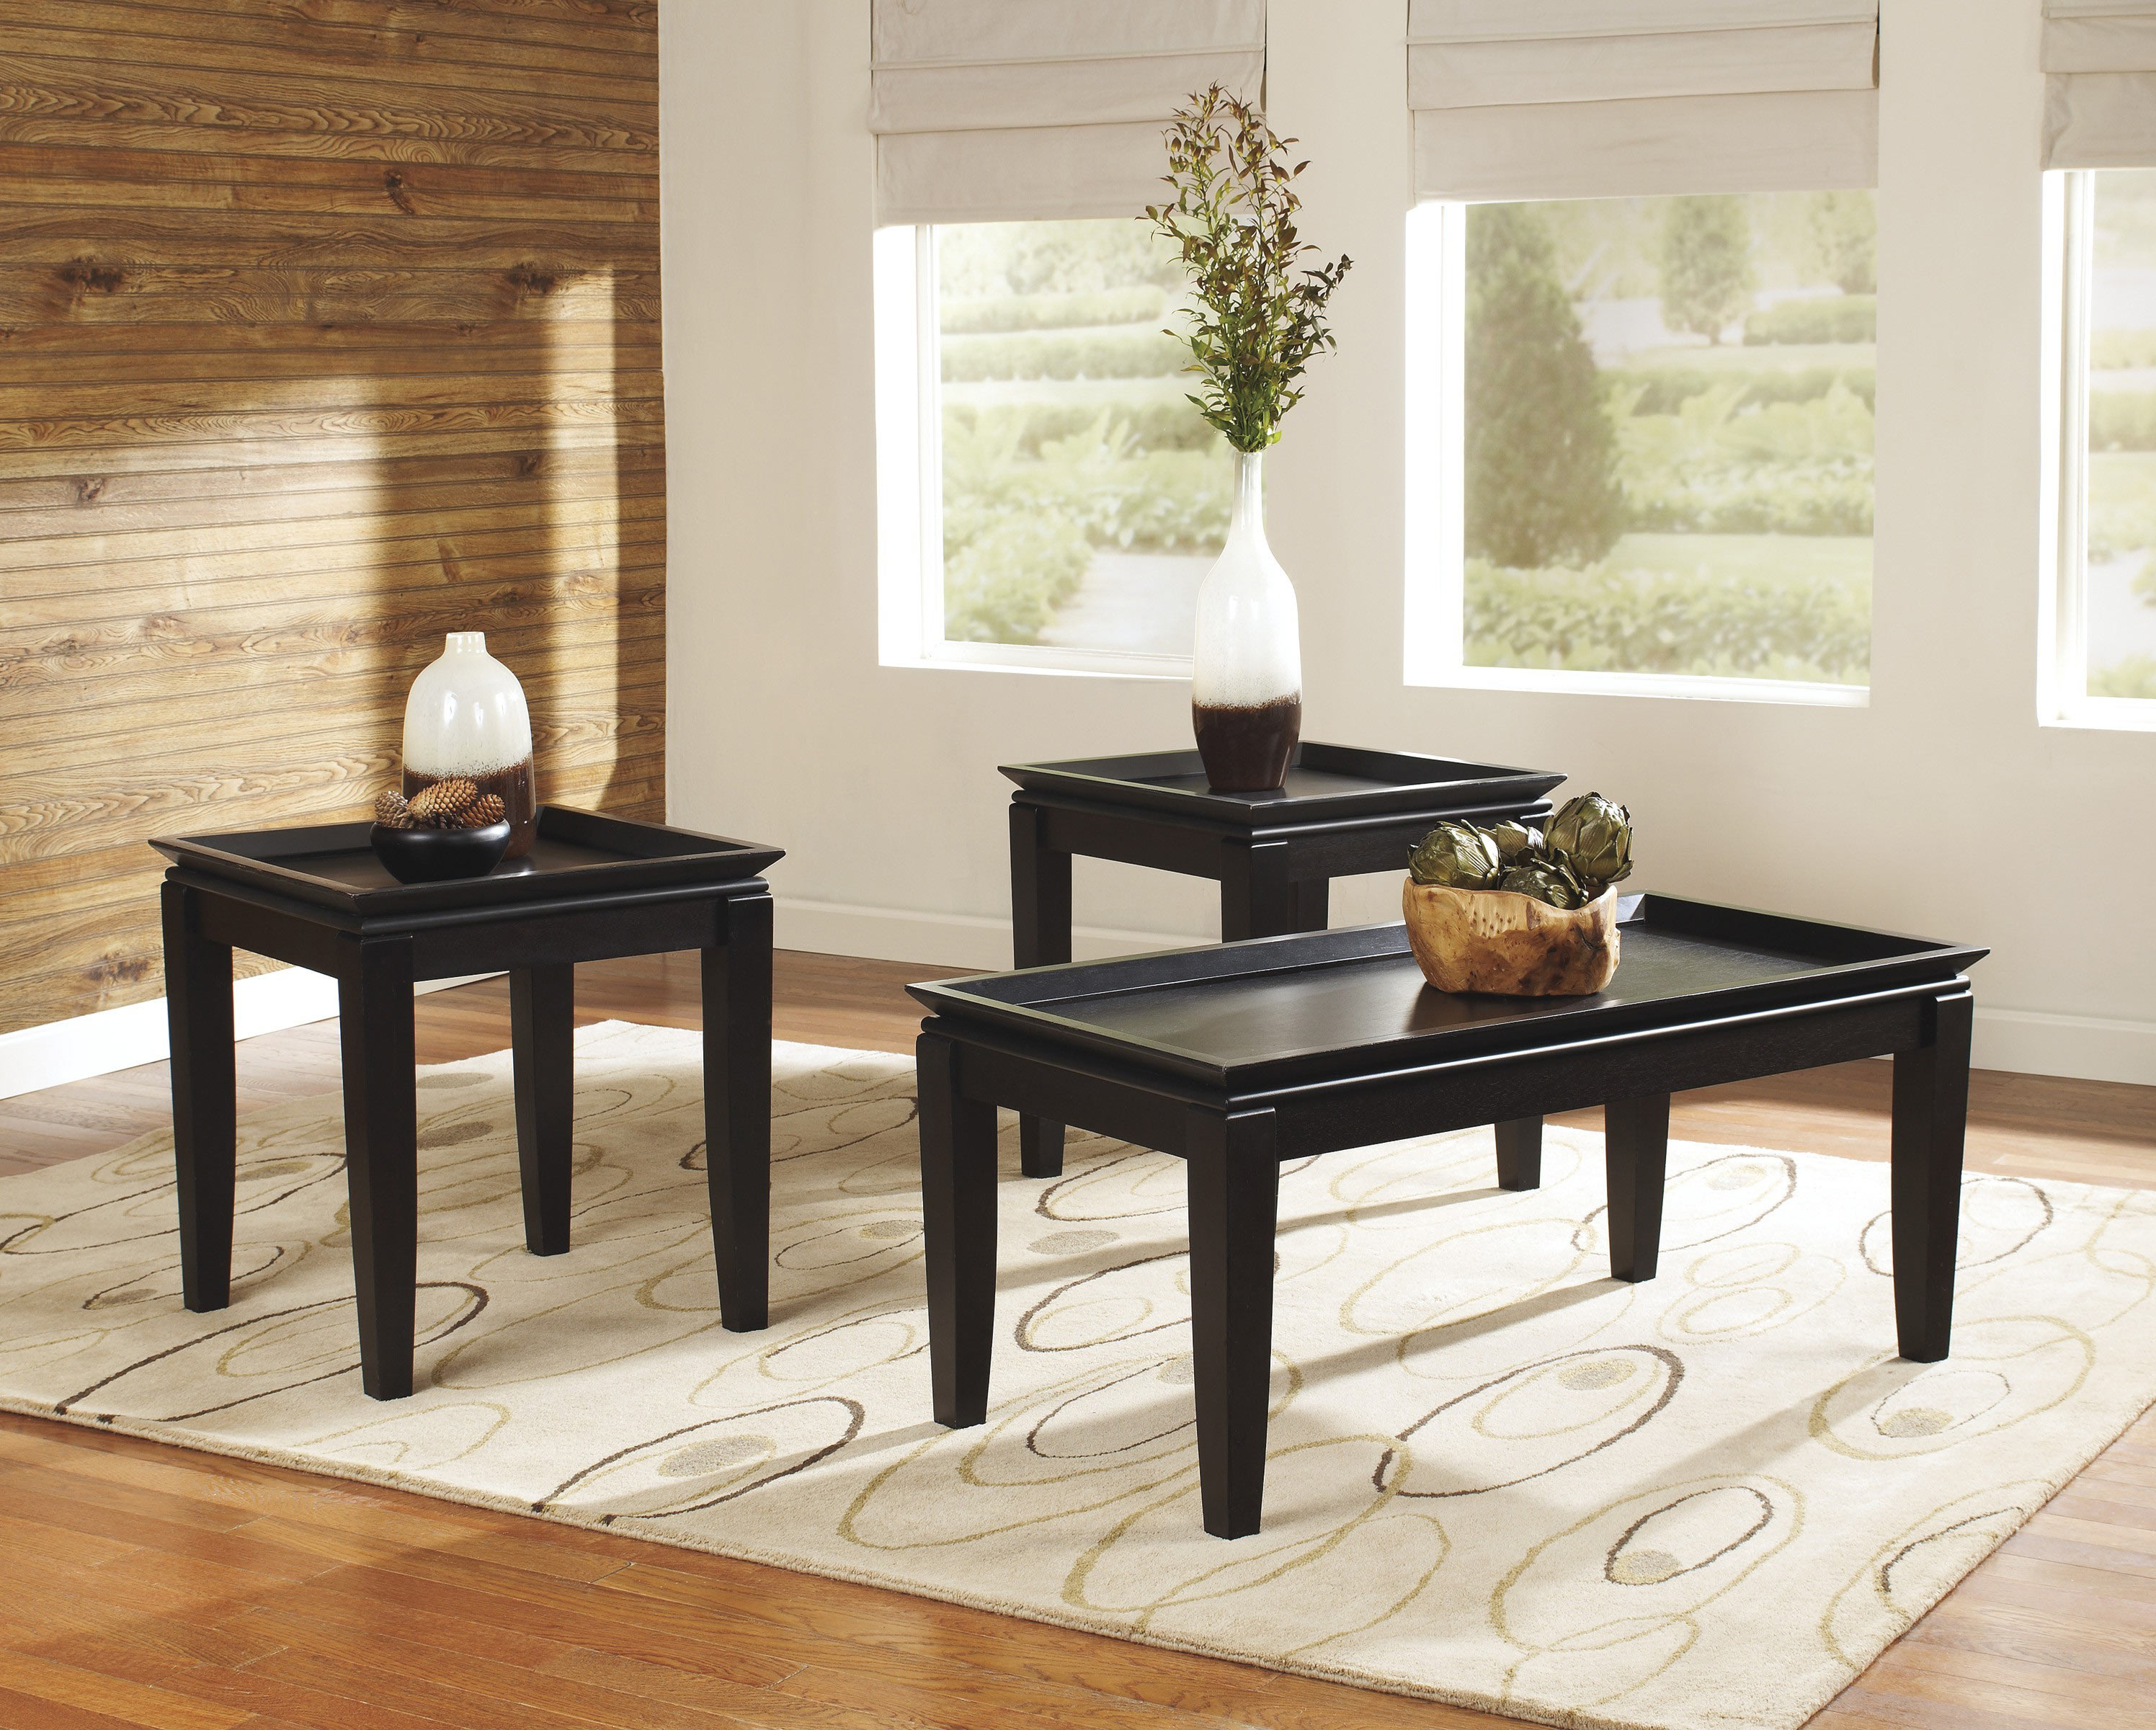 Coffee tables under 200 for modern living room focal for Modern living room coffee tables